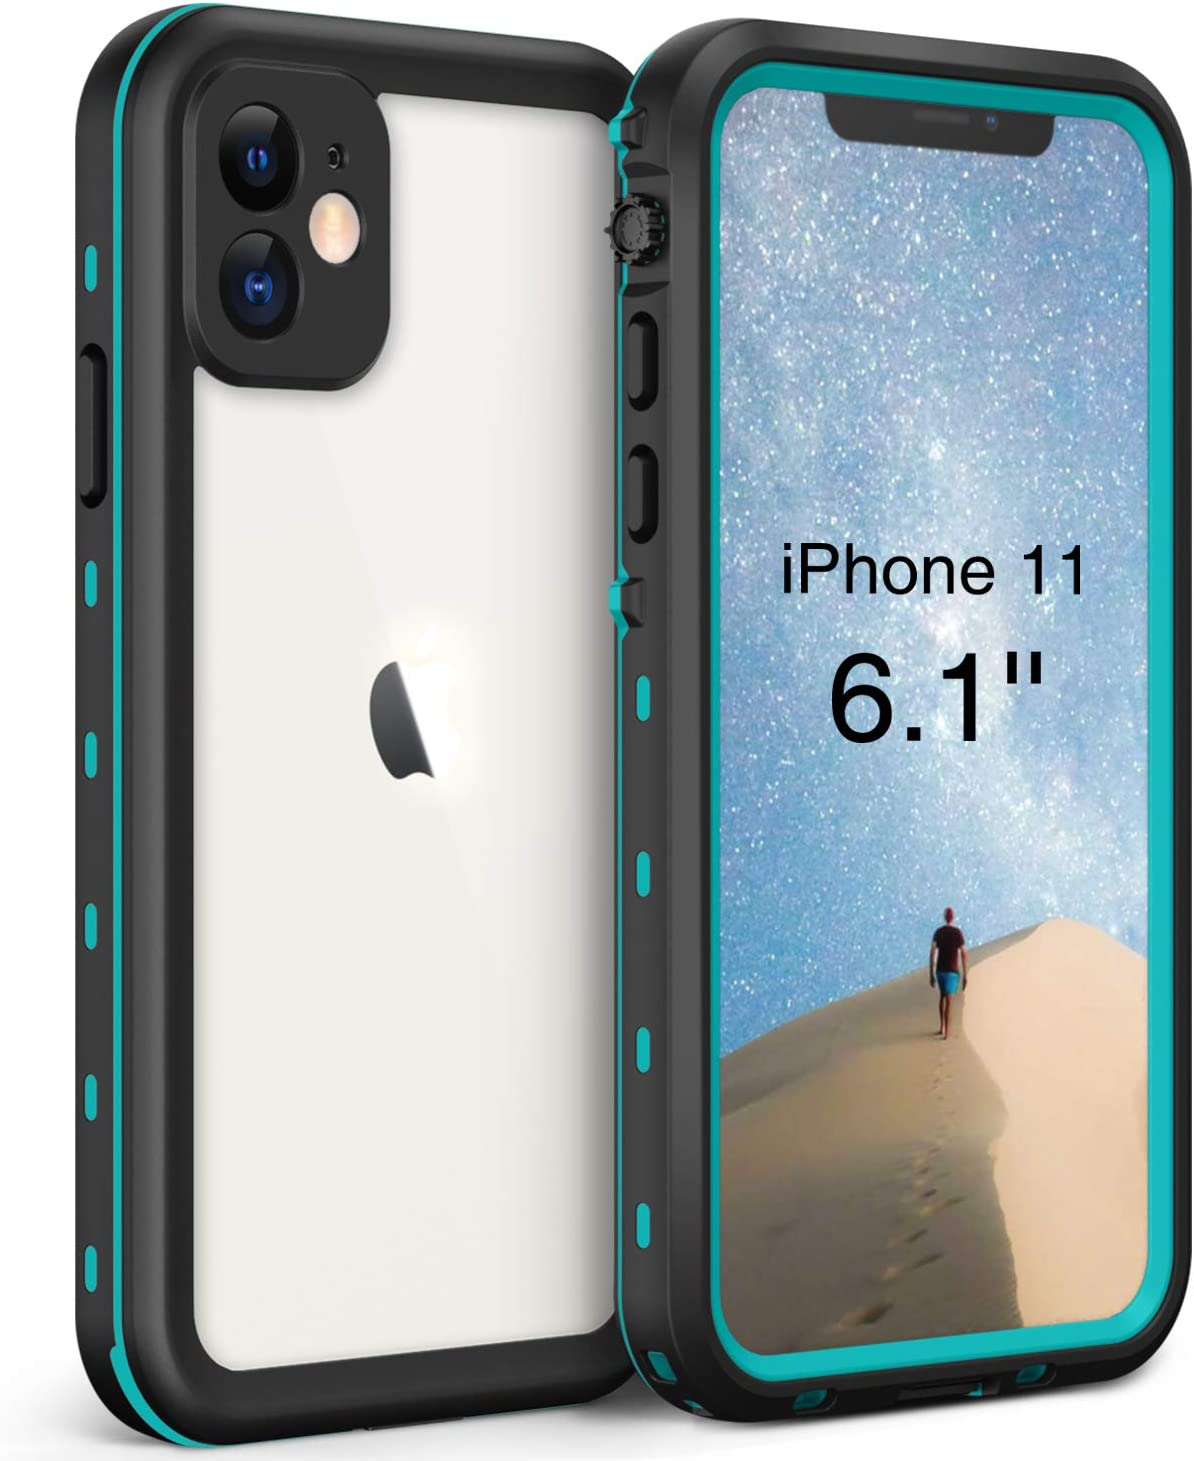 Waterproof Case for iPhone 11 (6.1 inch), Full Sealed IP68 Cover for Snowproof Dirtproof Shockproof Waterproof iPhone 11 Case, High Sensitive Touch Screen with Built-in Screen Protector (Aqua Blue)